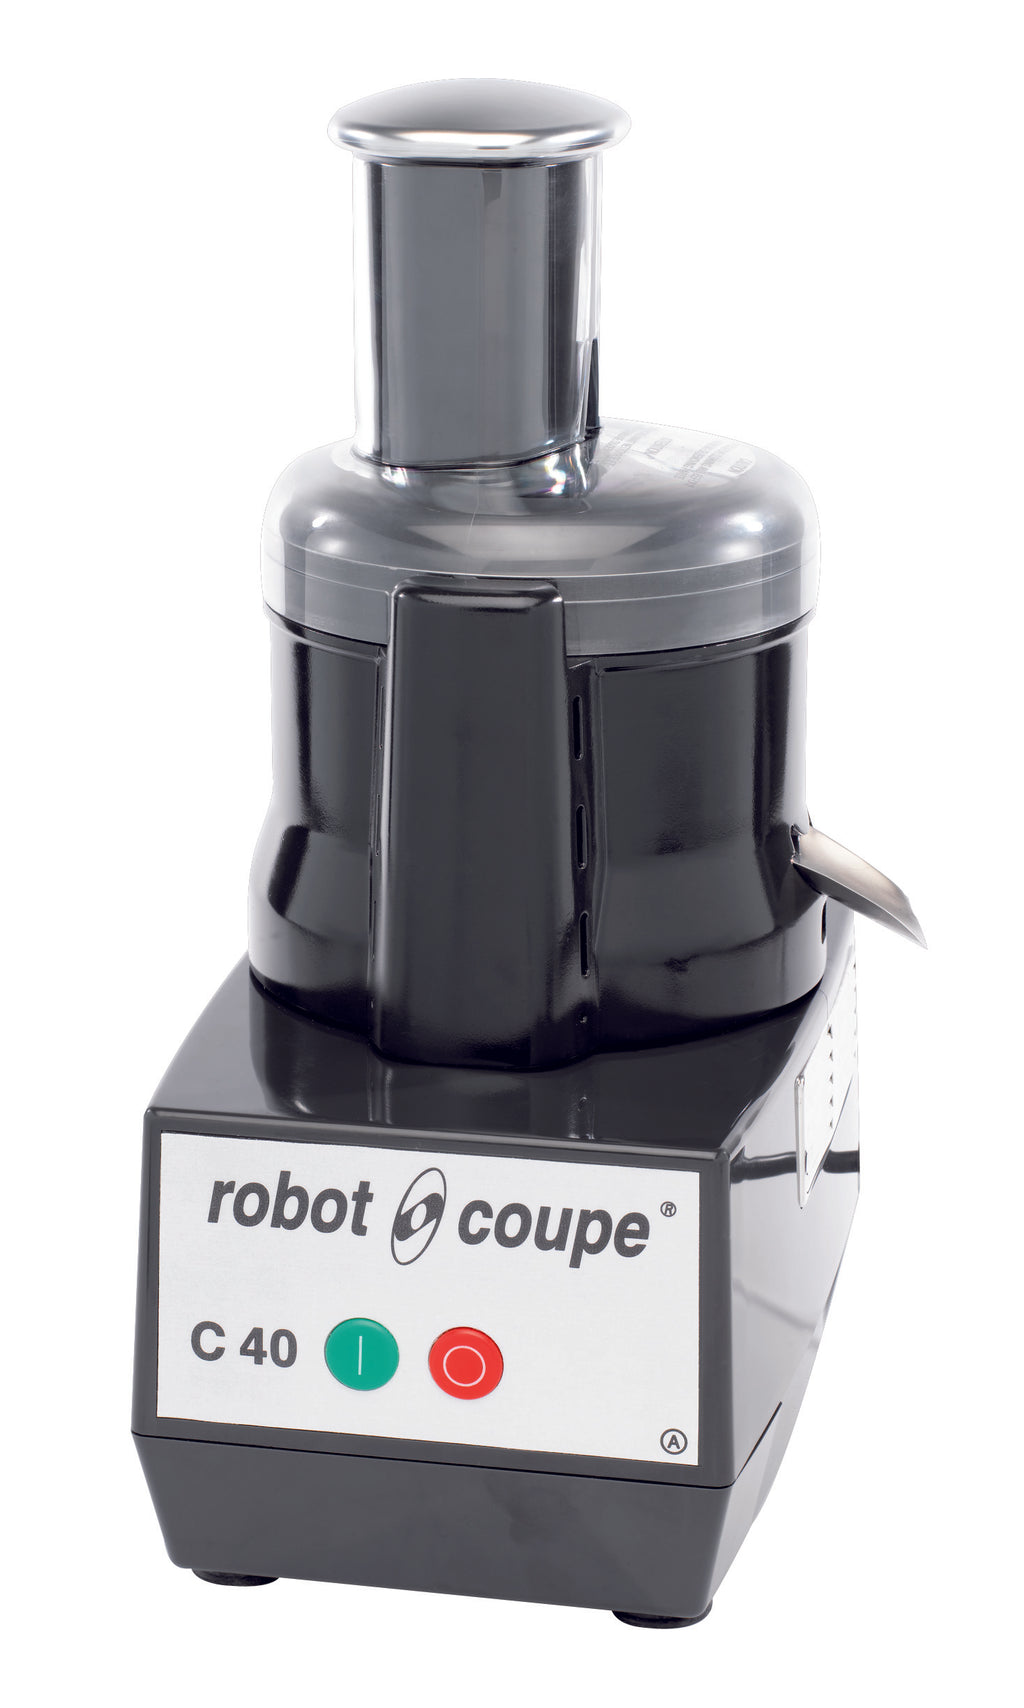 Robot Coupe C 40 Juice Extractors